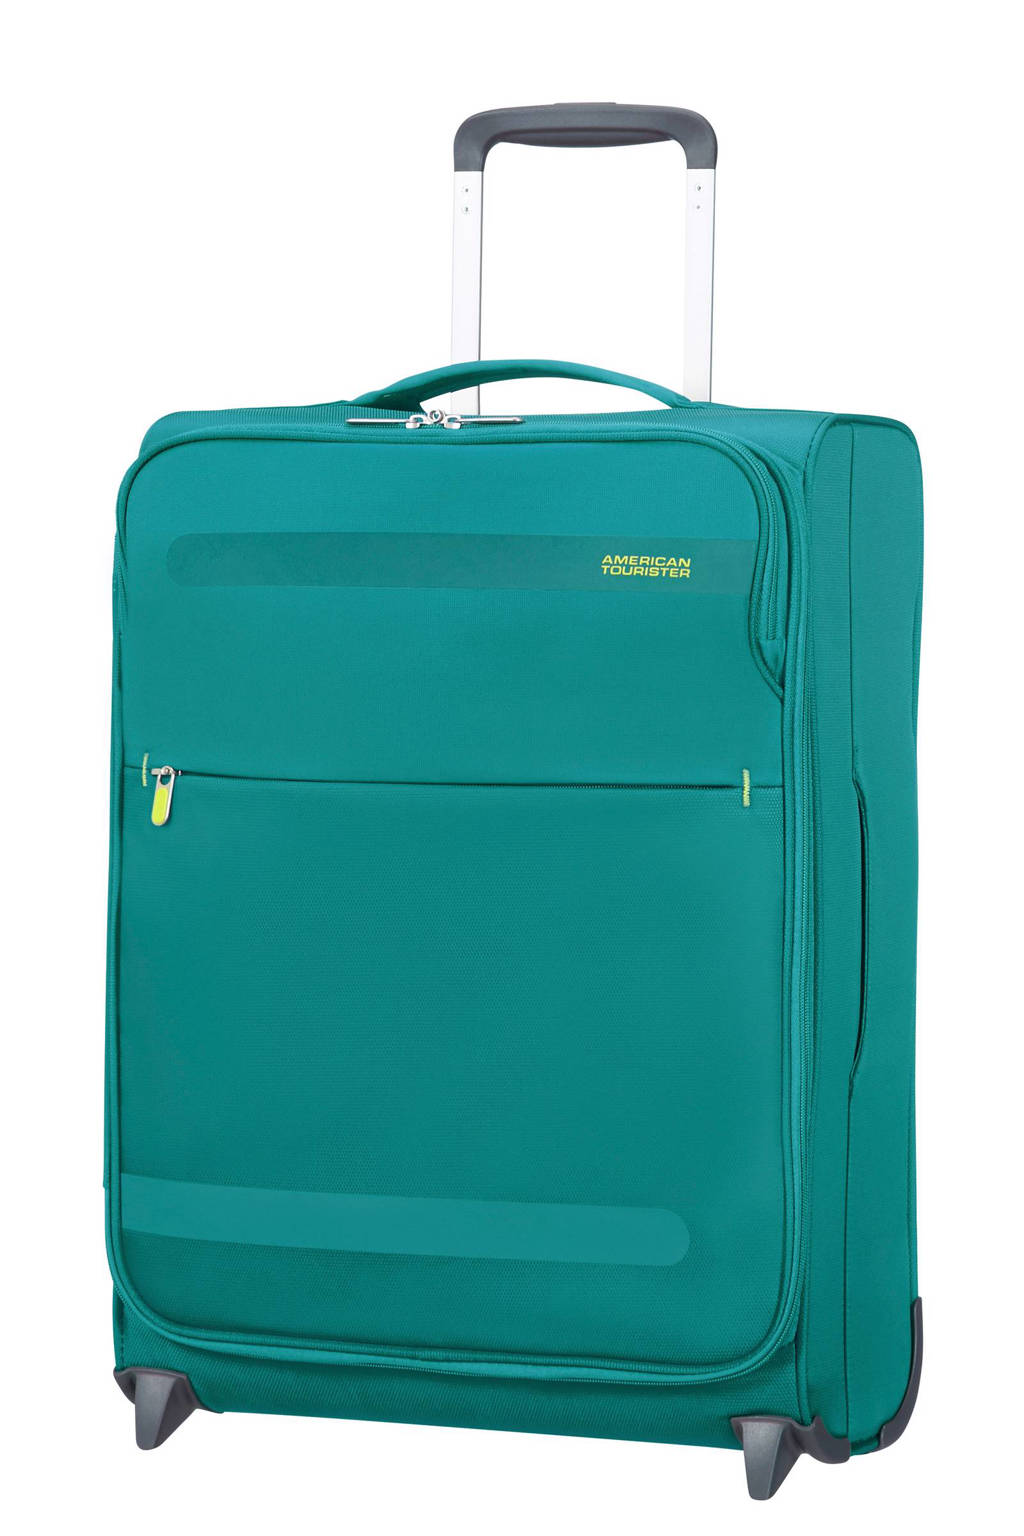 American Tourister HEROLITE SUPER LIGHT UPR.55/20 trolley, Cactus green